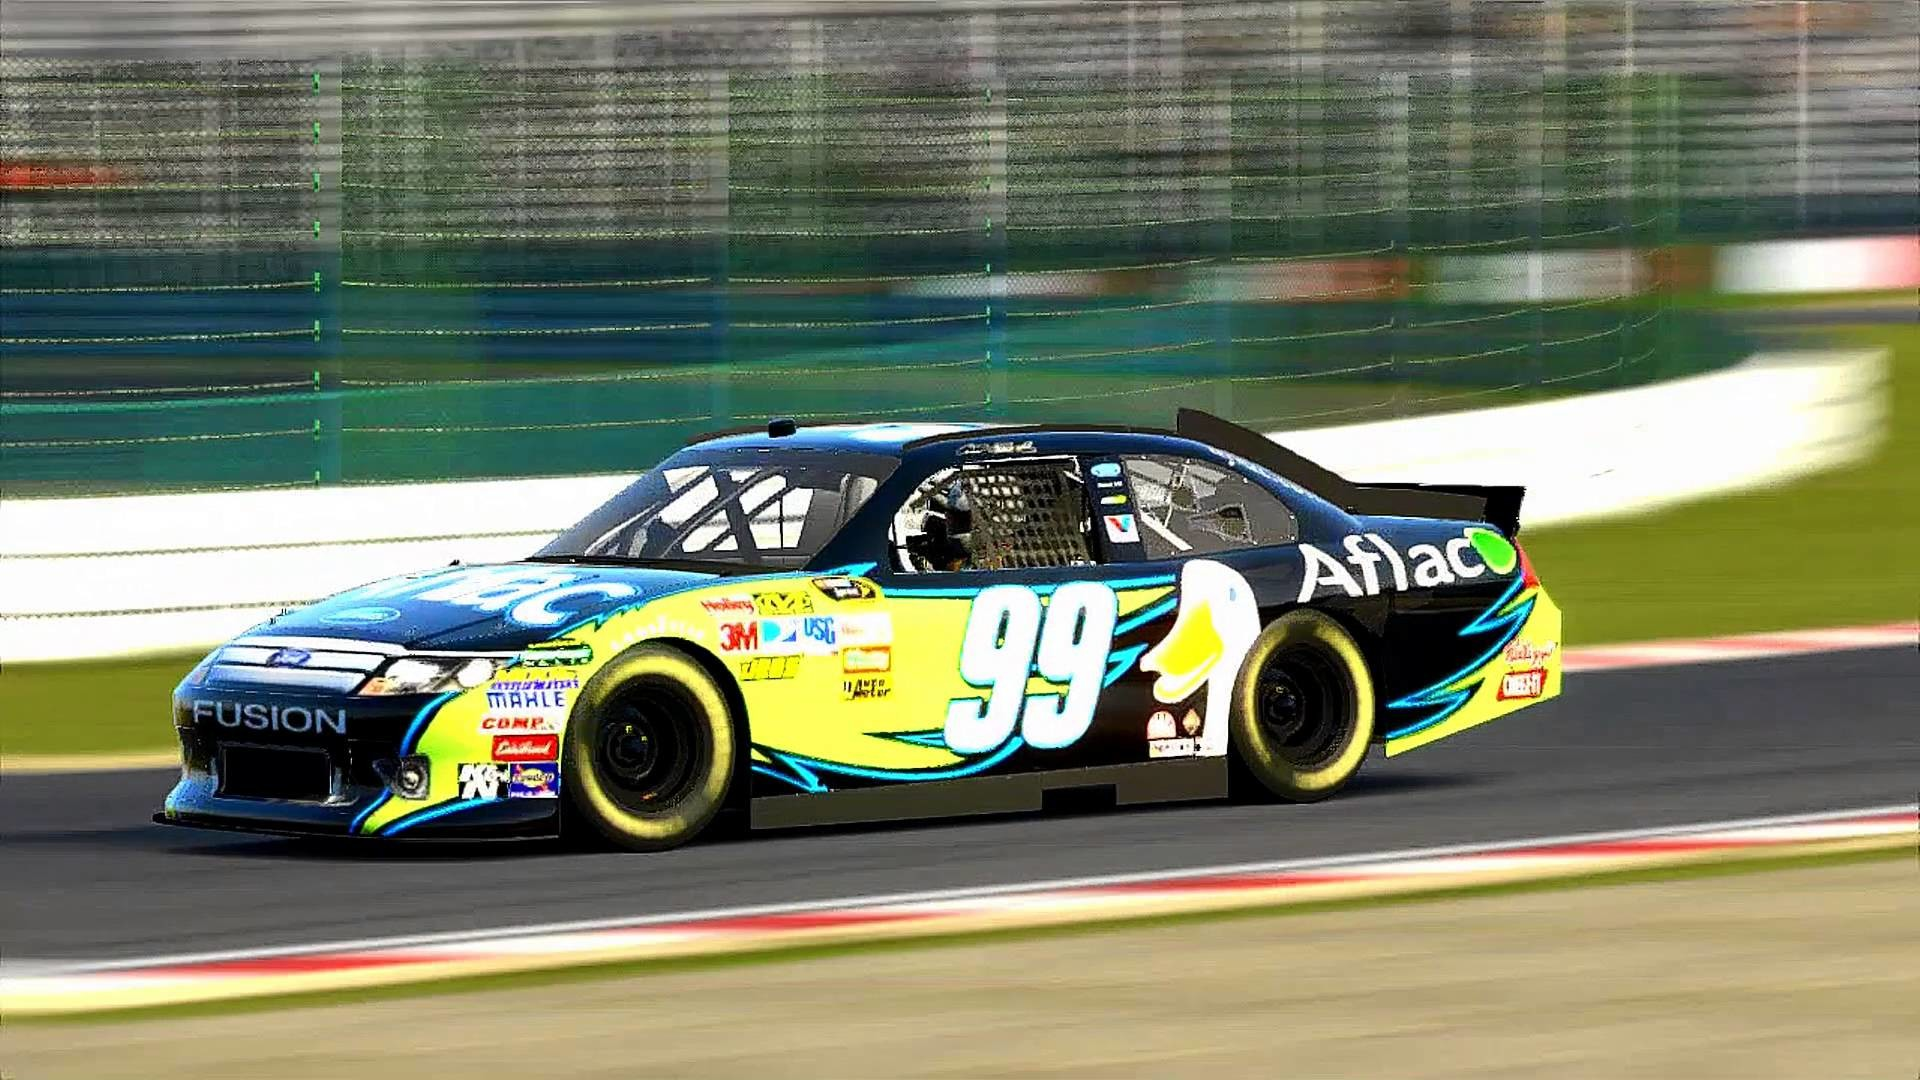 Res: 1920x1080, '13 Aflac Ford Fusion (Carl Edwards) - Suzuka Circuit: 2014 (feat.  VicReign93)